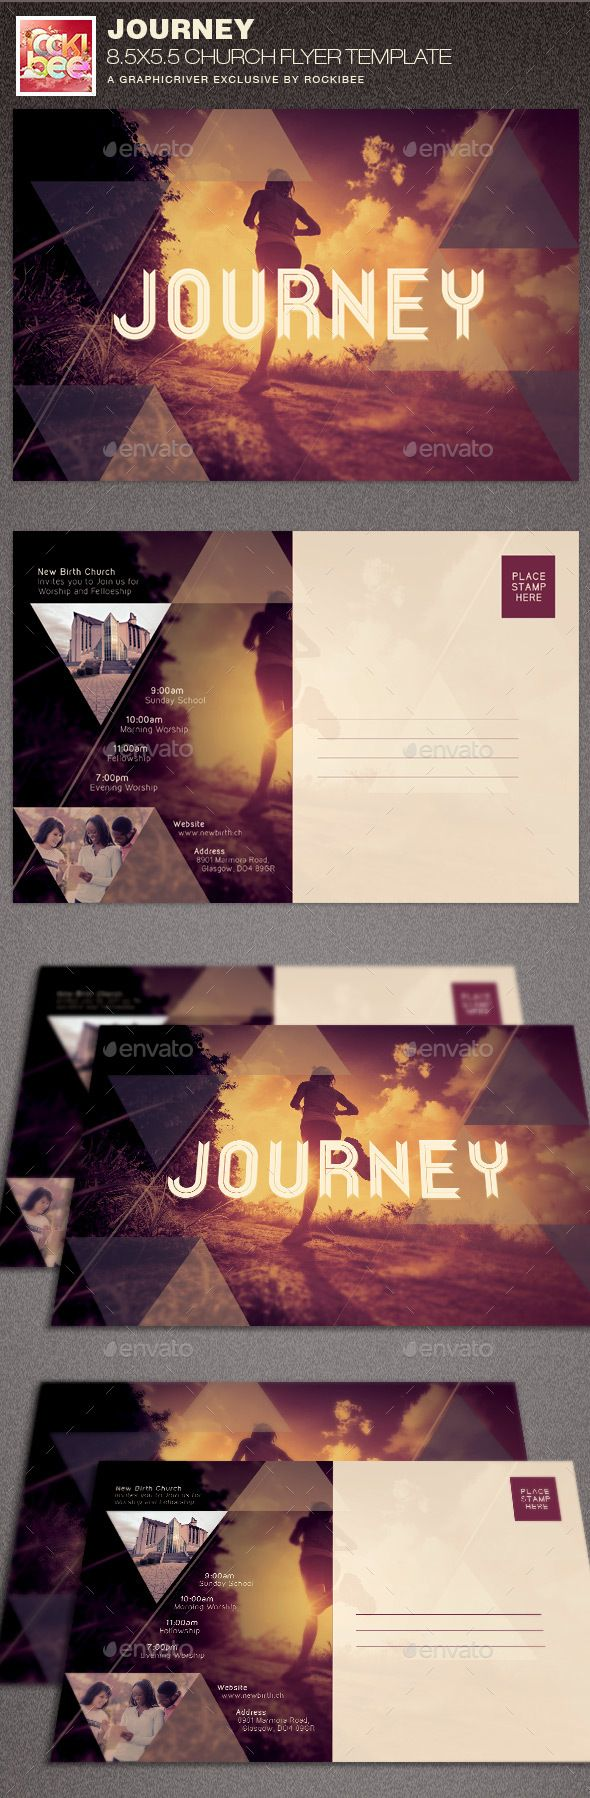 Journey Church Flyer Template — Photoshop PSD #revelation #place prepared • Available here → https://graphicriver.net/item/journey-church-flyer-template/15480128?ref=pxcr